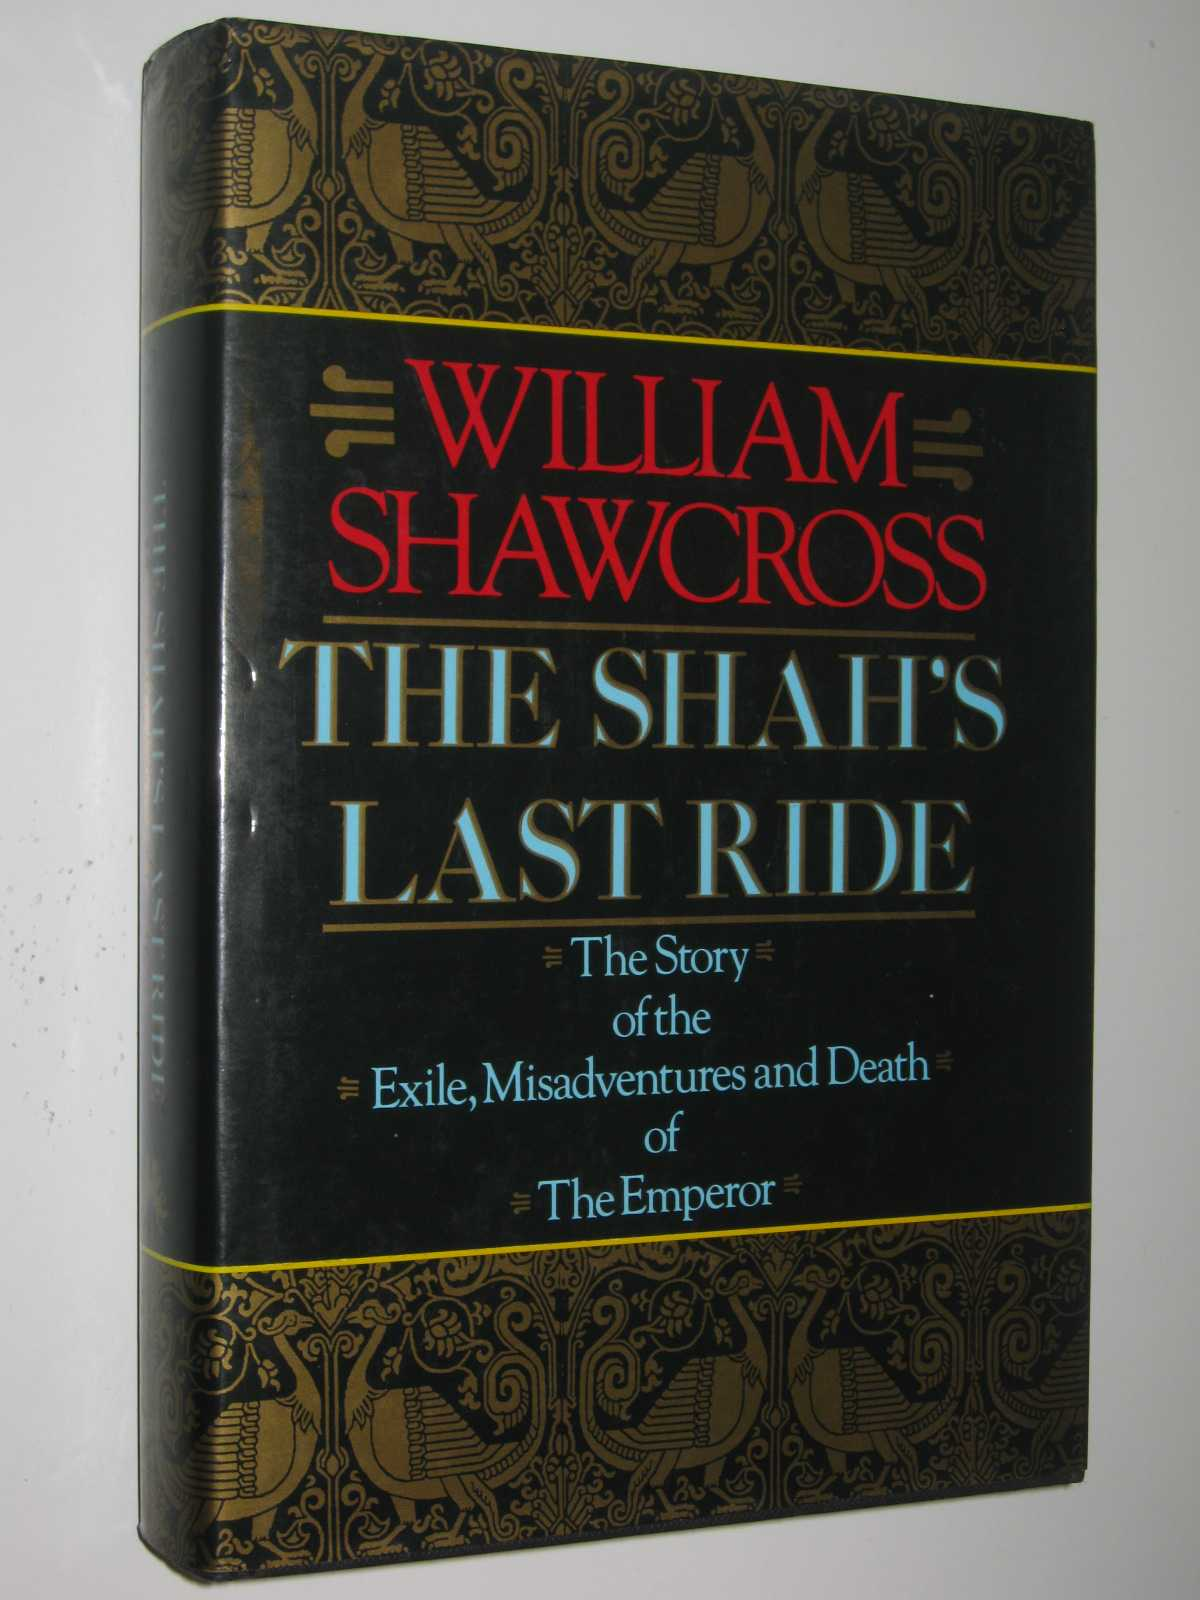 The Shah's Last Ride : The Story of the Exile, Misadventures and Death of the Emperor, Shawcross,William